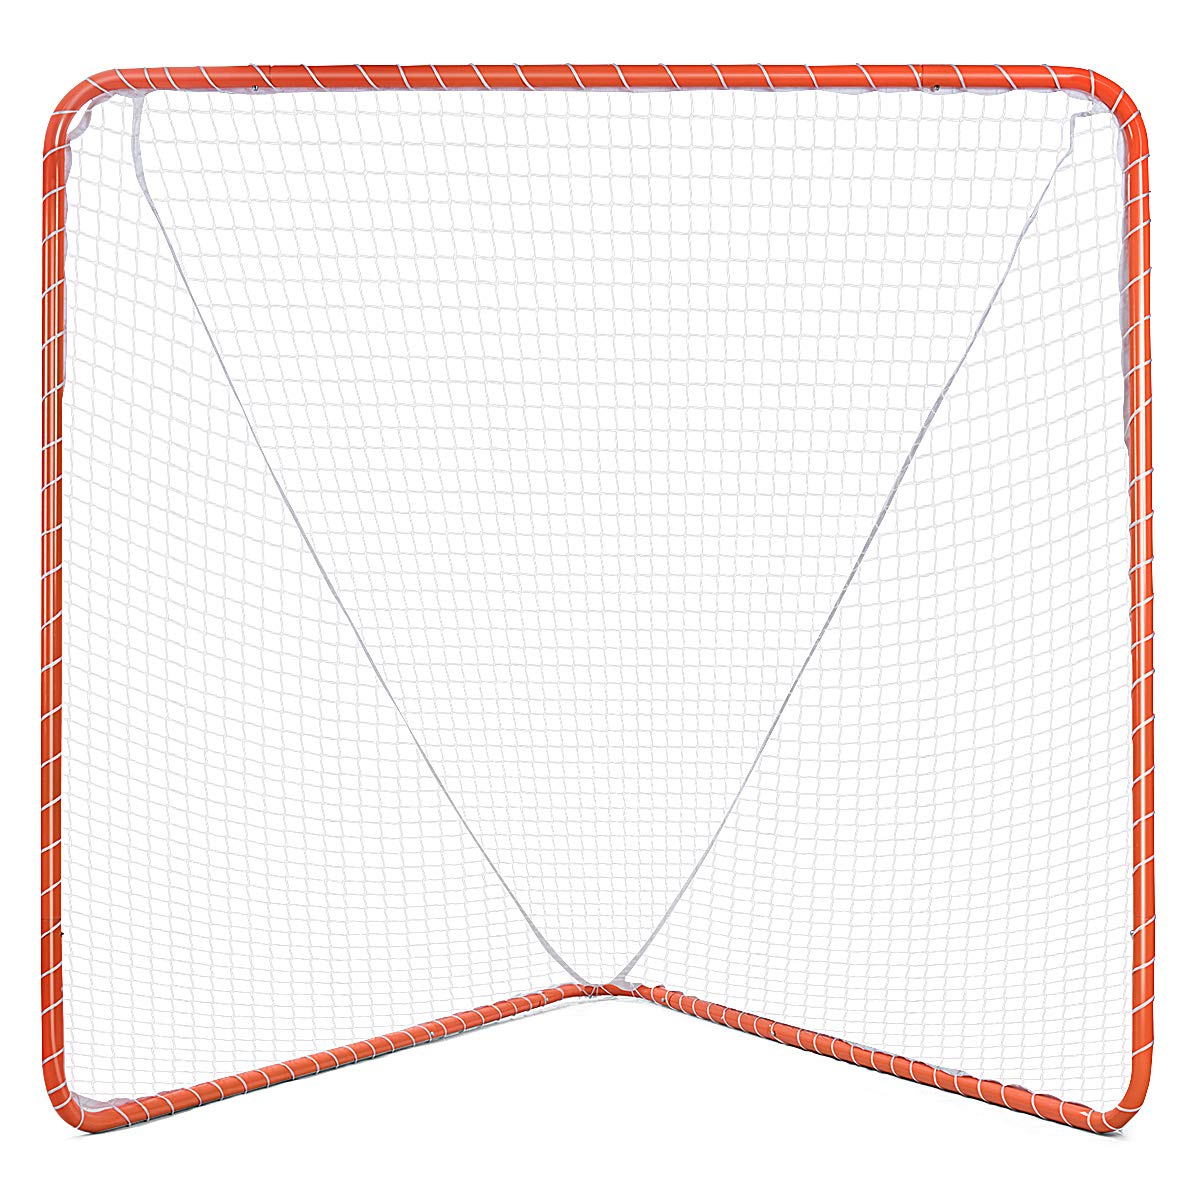 GOPLUS Lacrosse Goal, 6' x 6' Practice Lacrosse Goal and Net for Indoor & Outdoor Backyard Shooting Training Playing with Easy Snap Lock Iron Frame Net Included